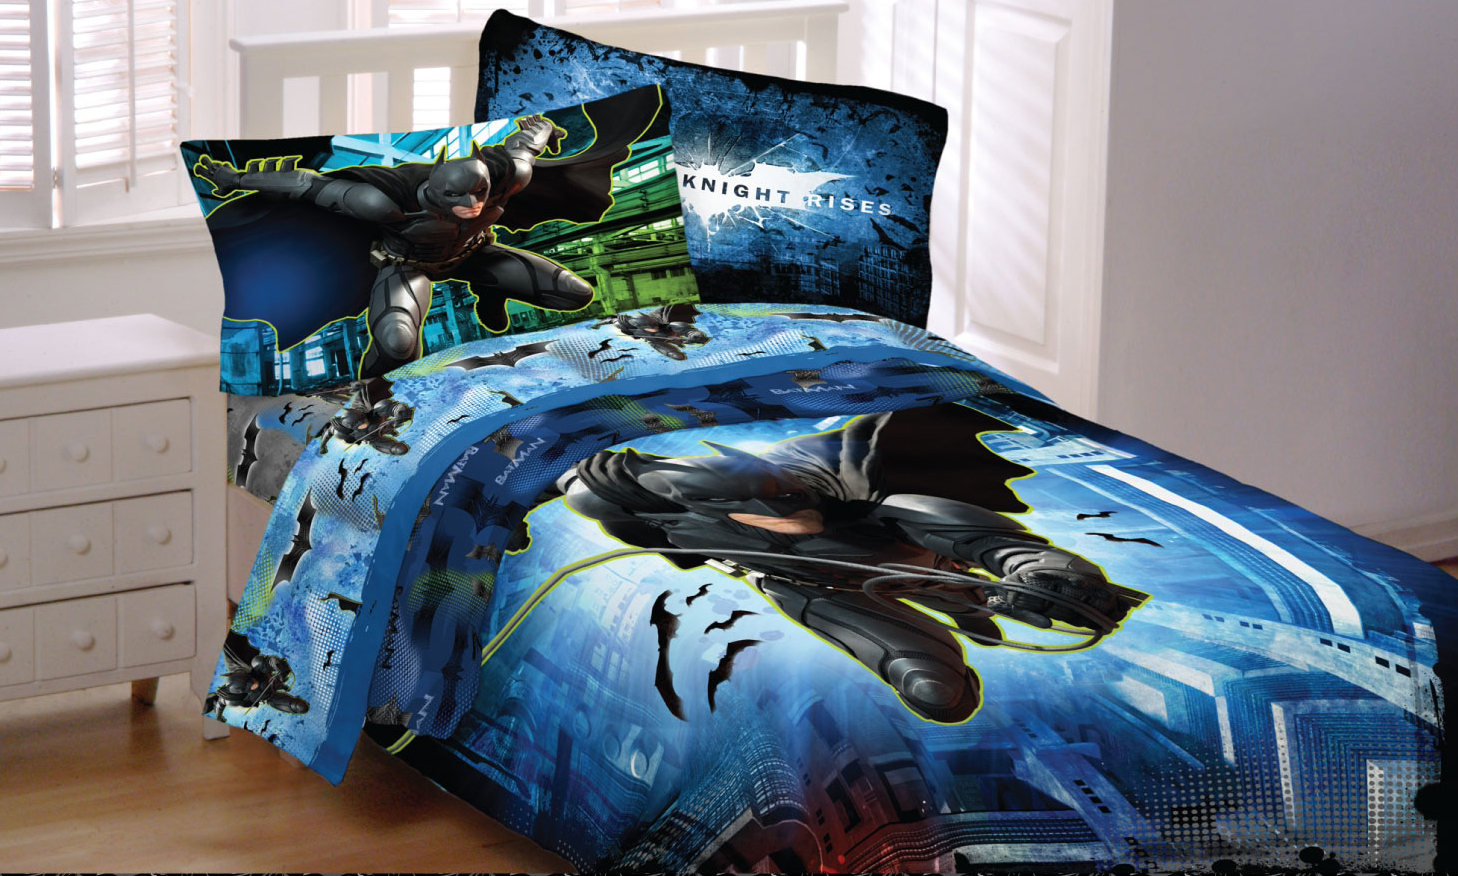 BATMAN Bedding (View 1 of 10)